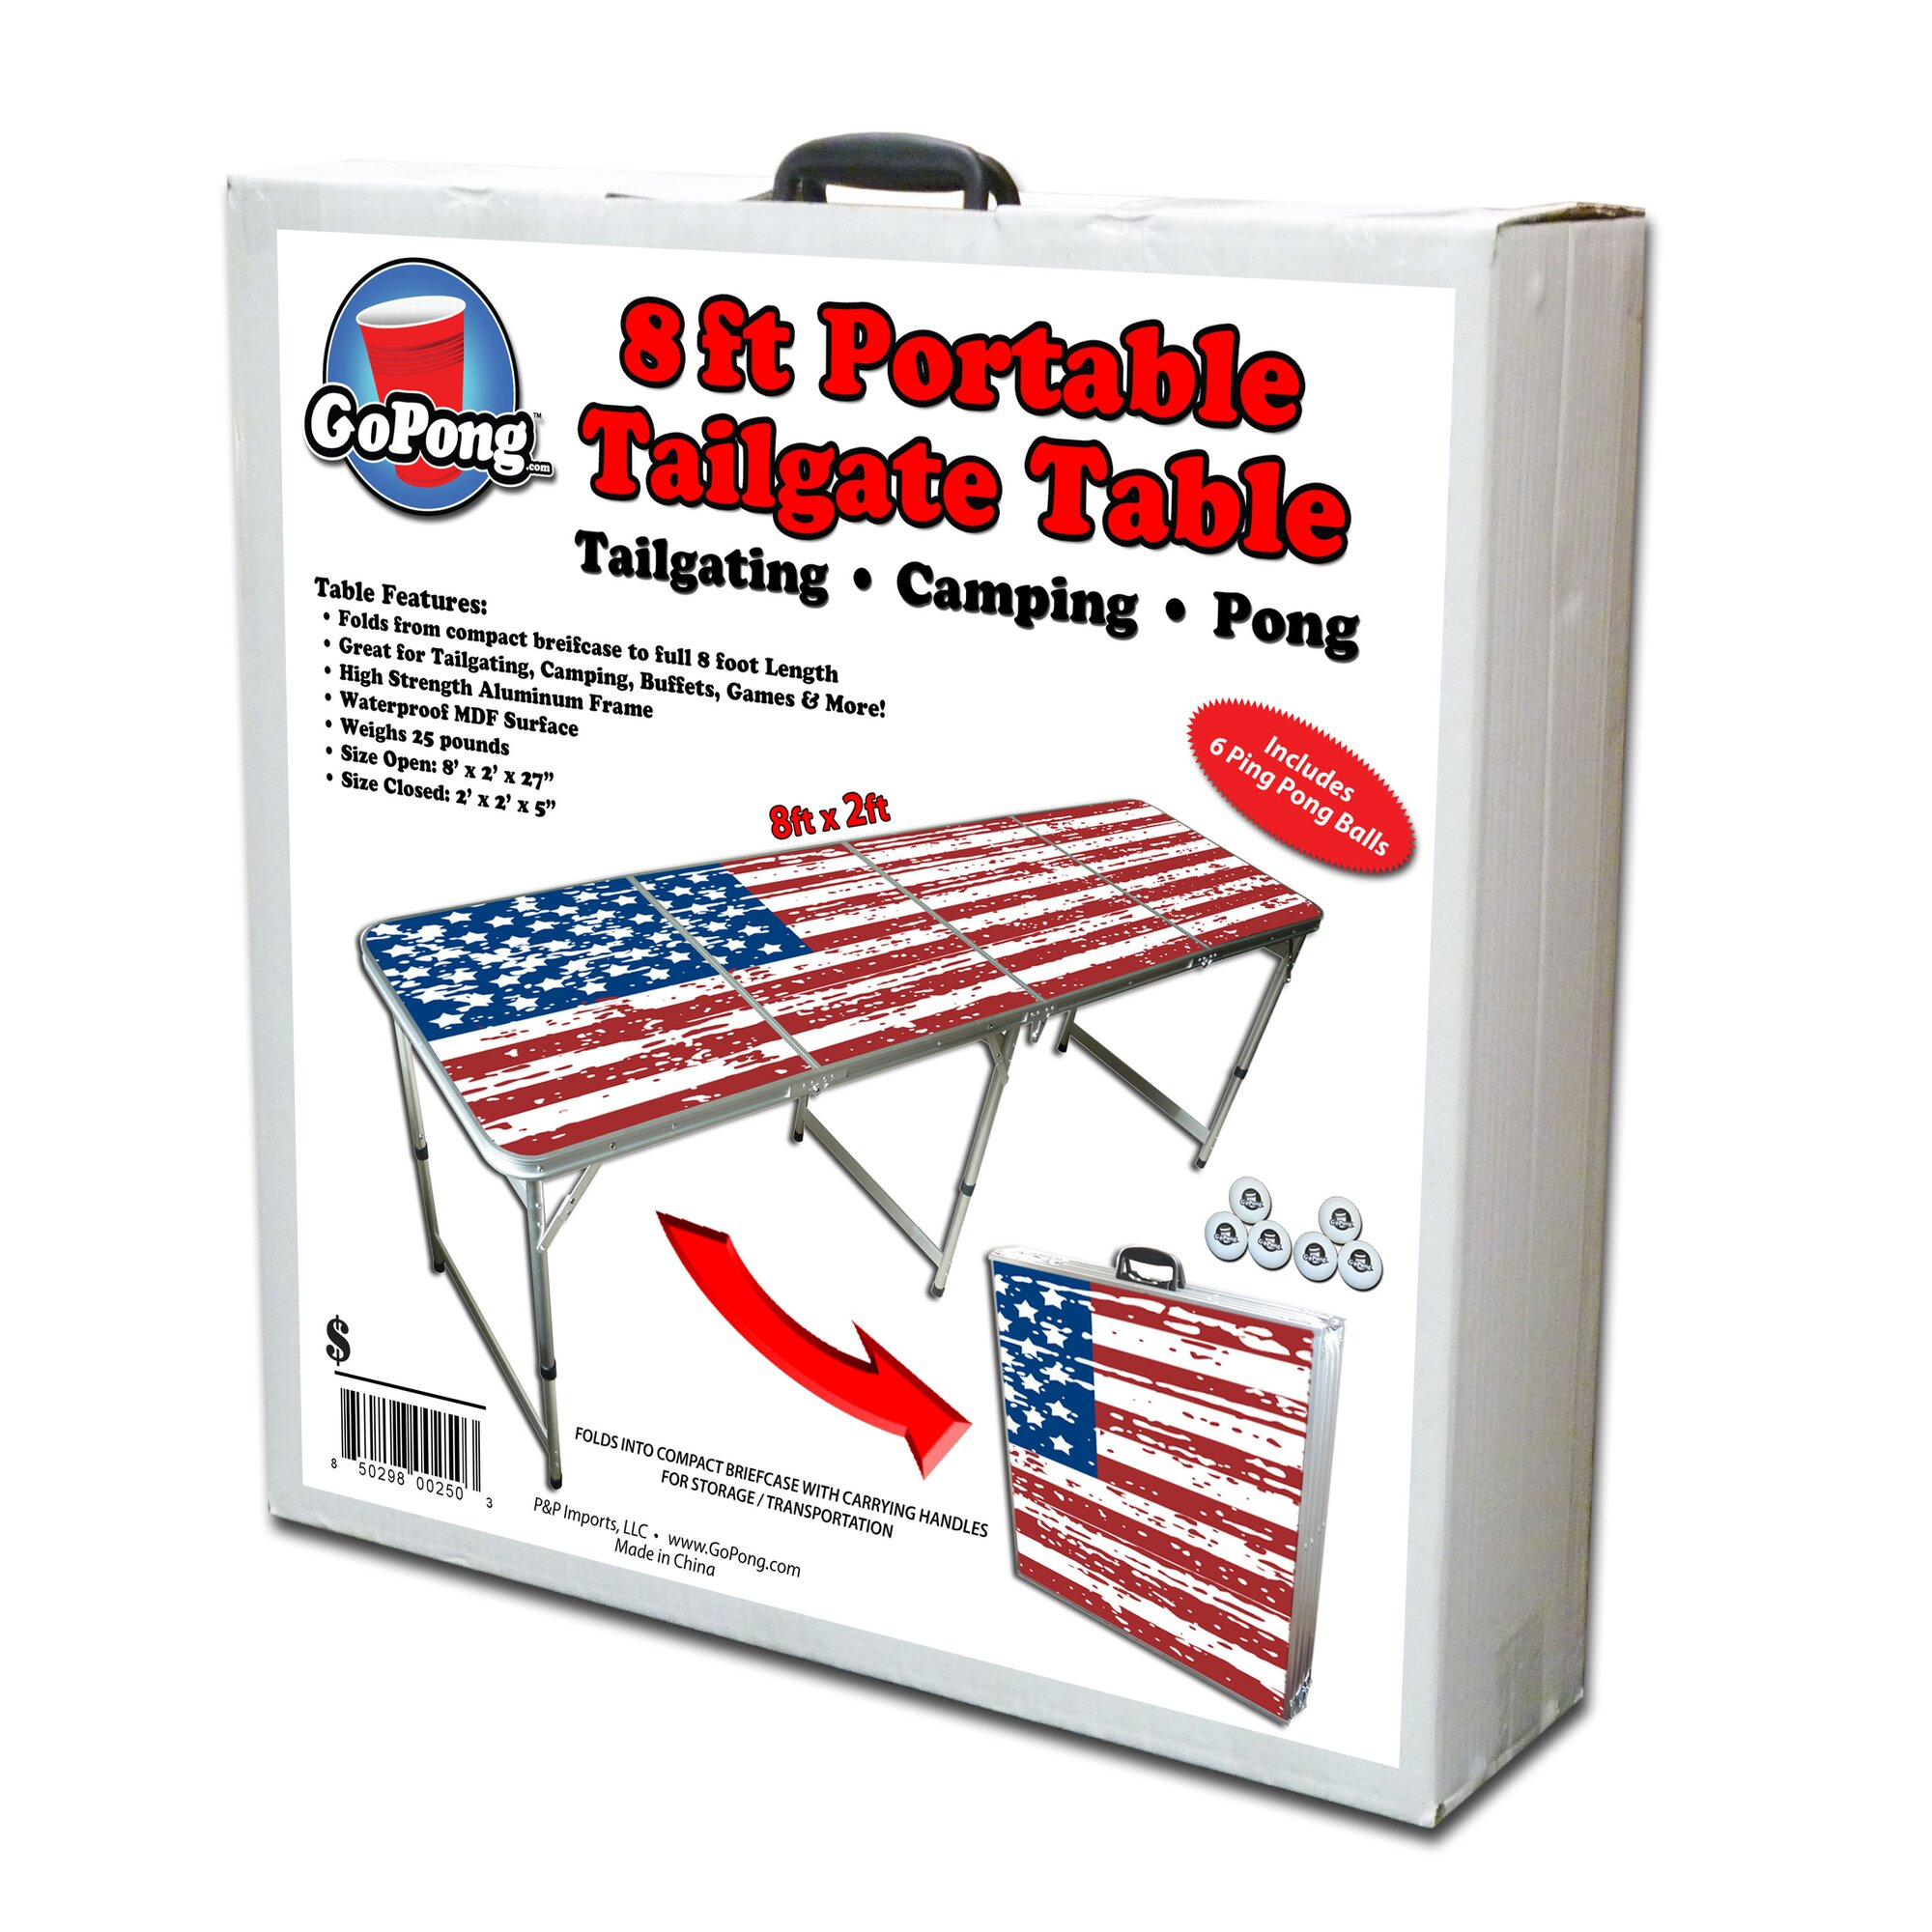 Beer pong table dimensions - 8 Foot Beer Pong Table Tailgate Table